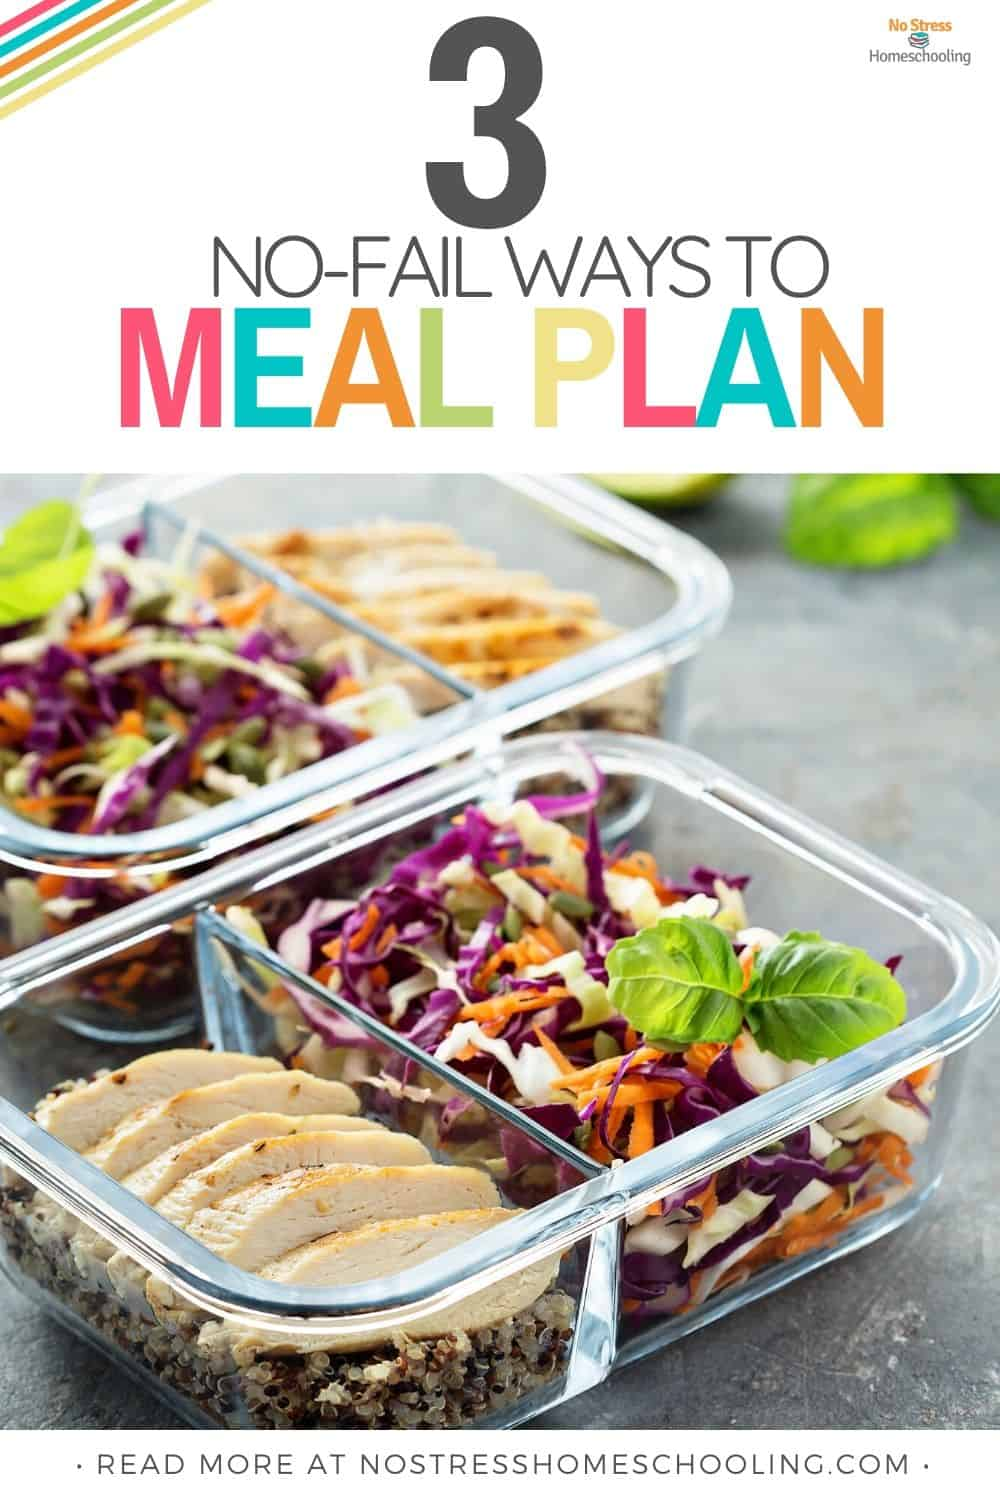 image of 3 no fail ways to meal plan